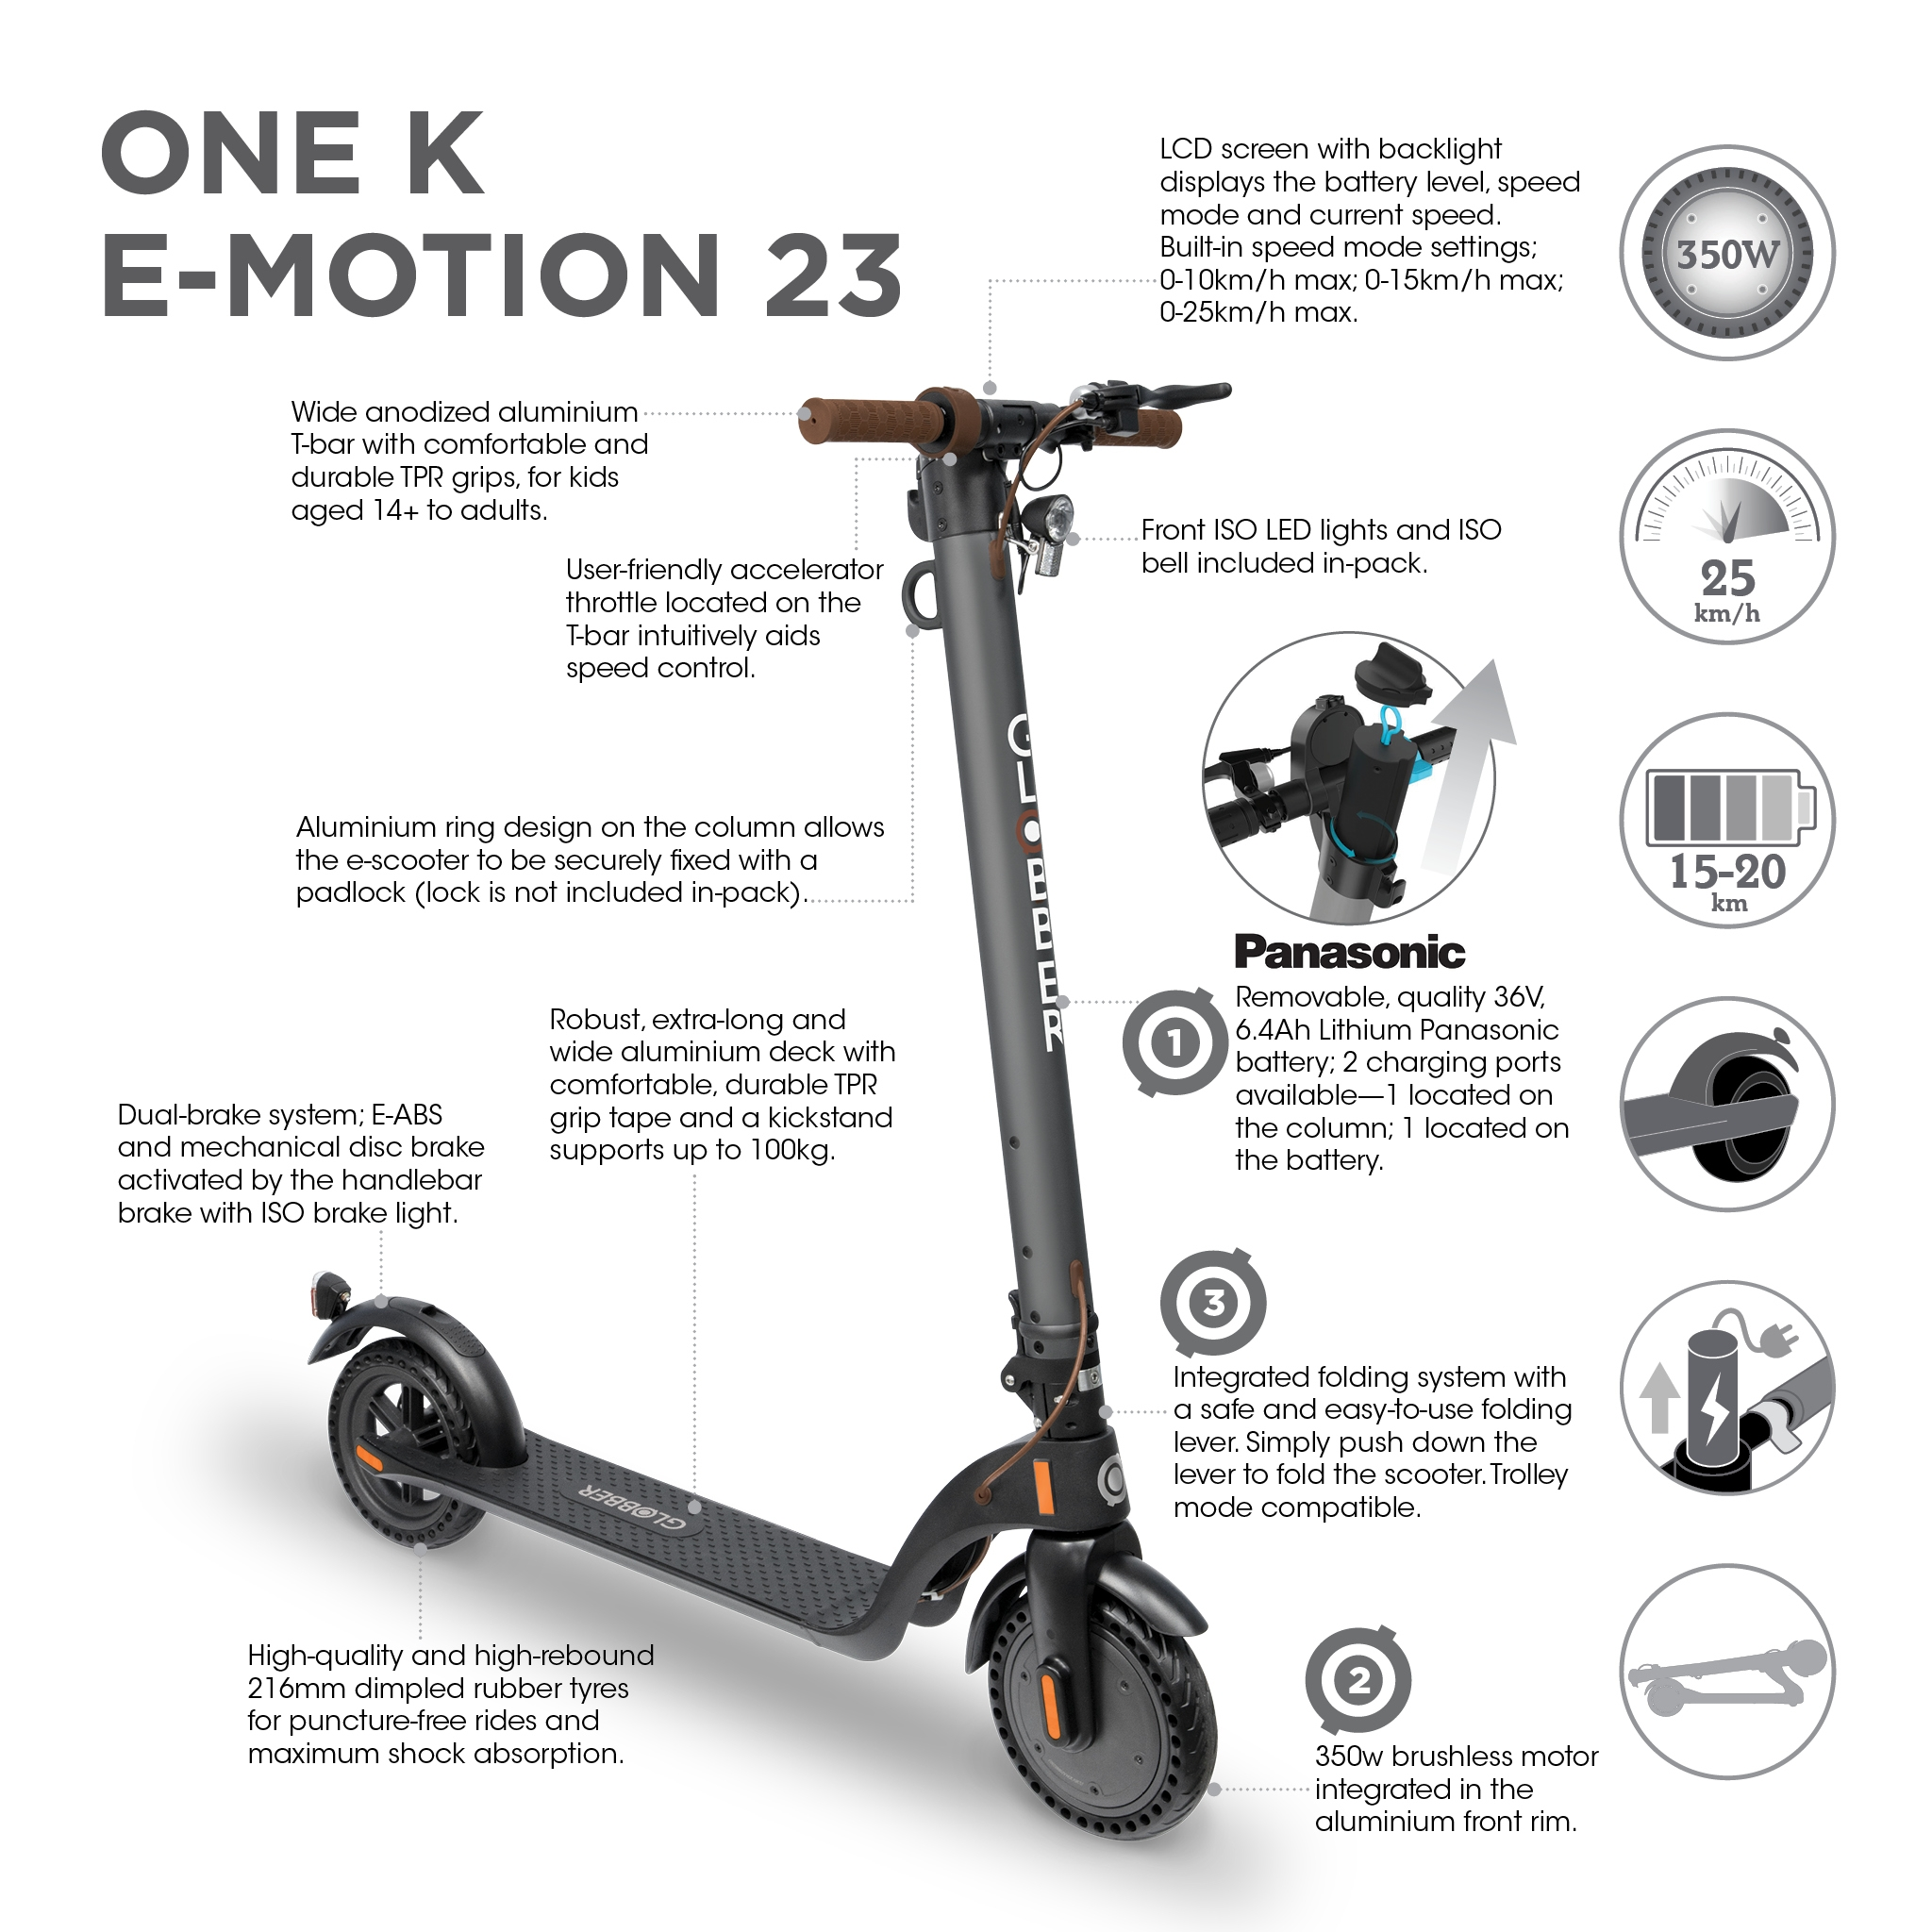 Globber-ONE-K-E-MOTION-23-electric-scooter-for-teens-and-adults-aged-14-and-above 2